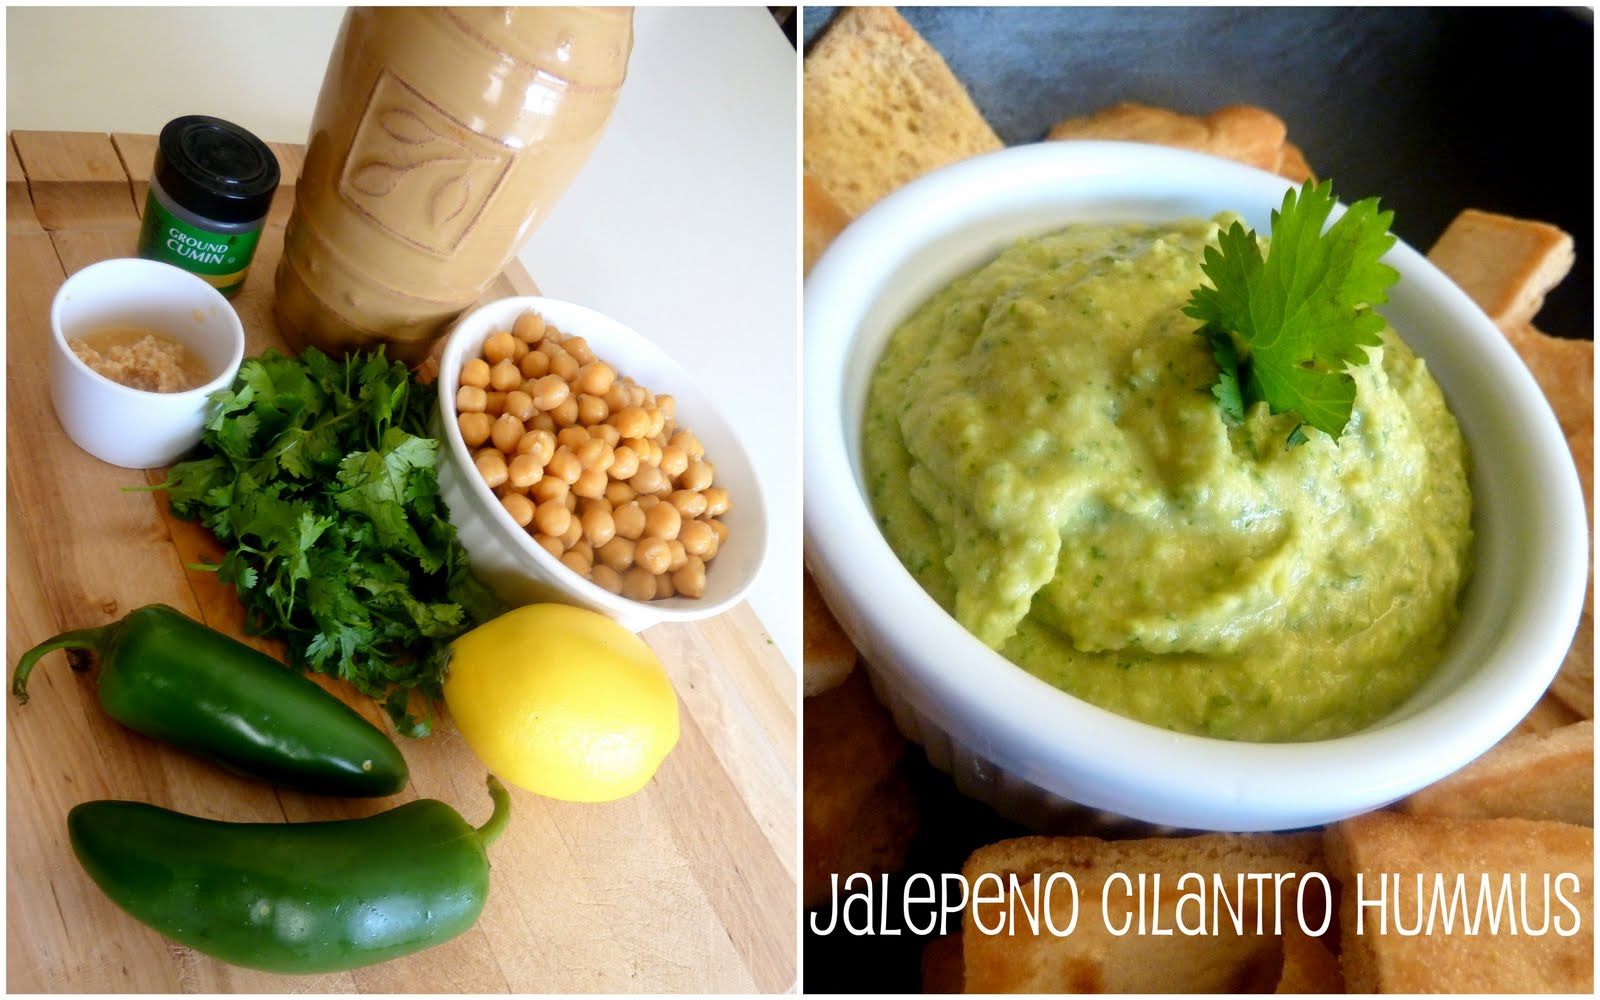 Jalepeno Cilantro Hummus & Roasted Red Pepper Hummus Recipes |